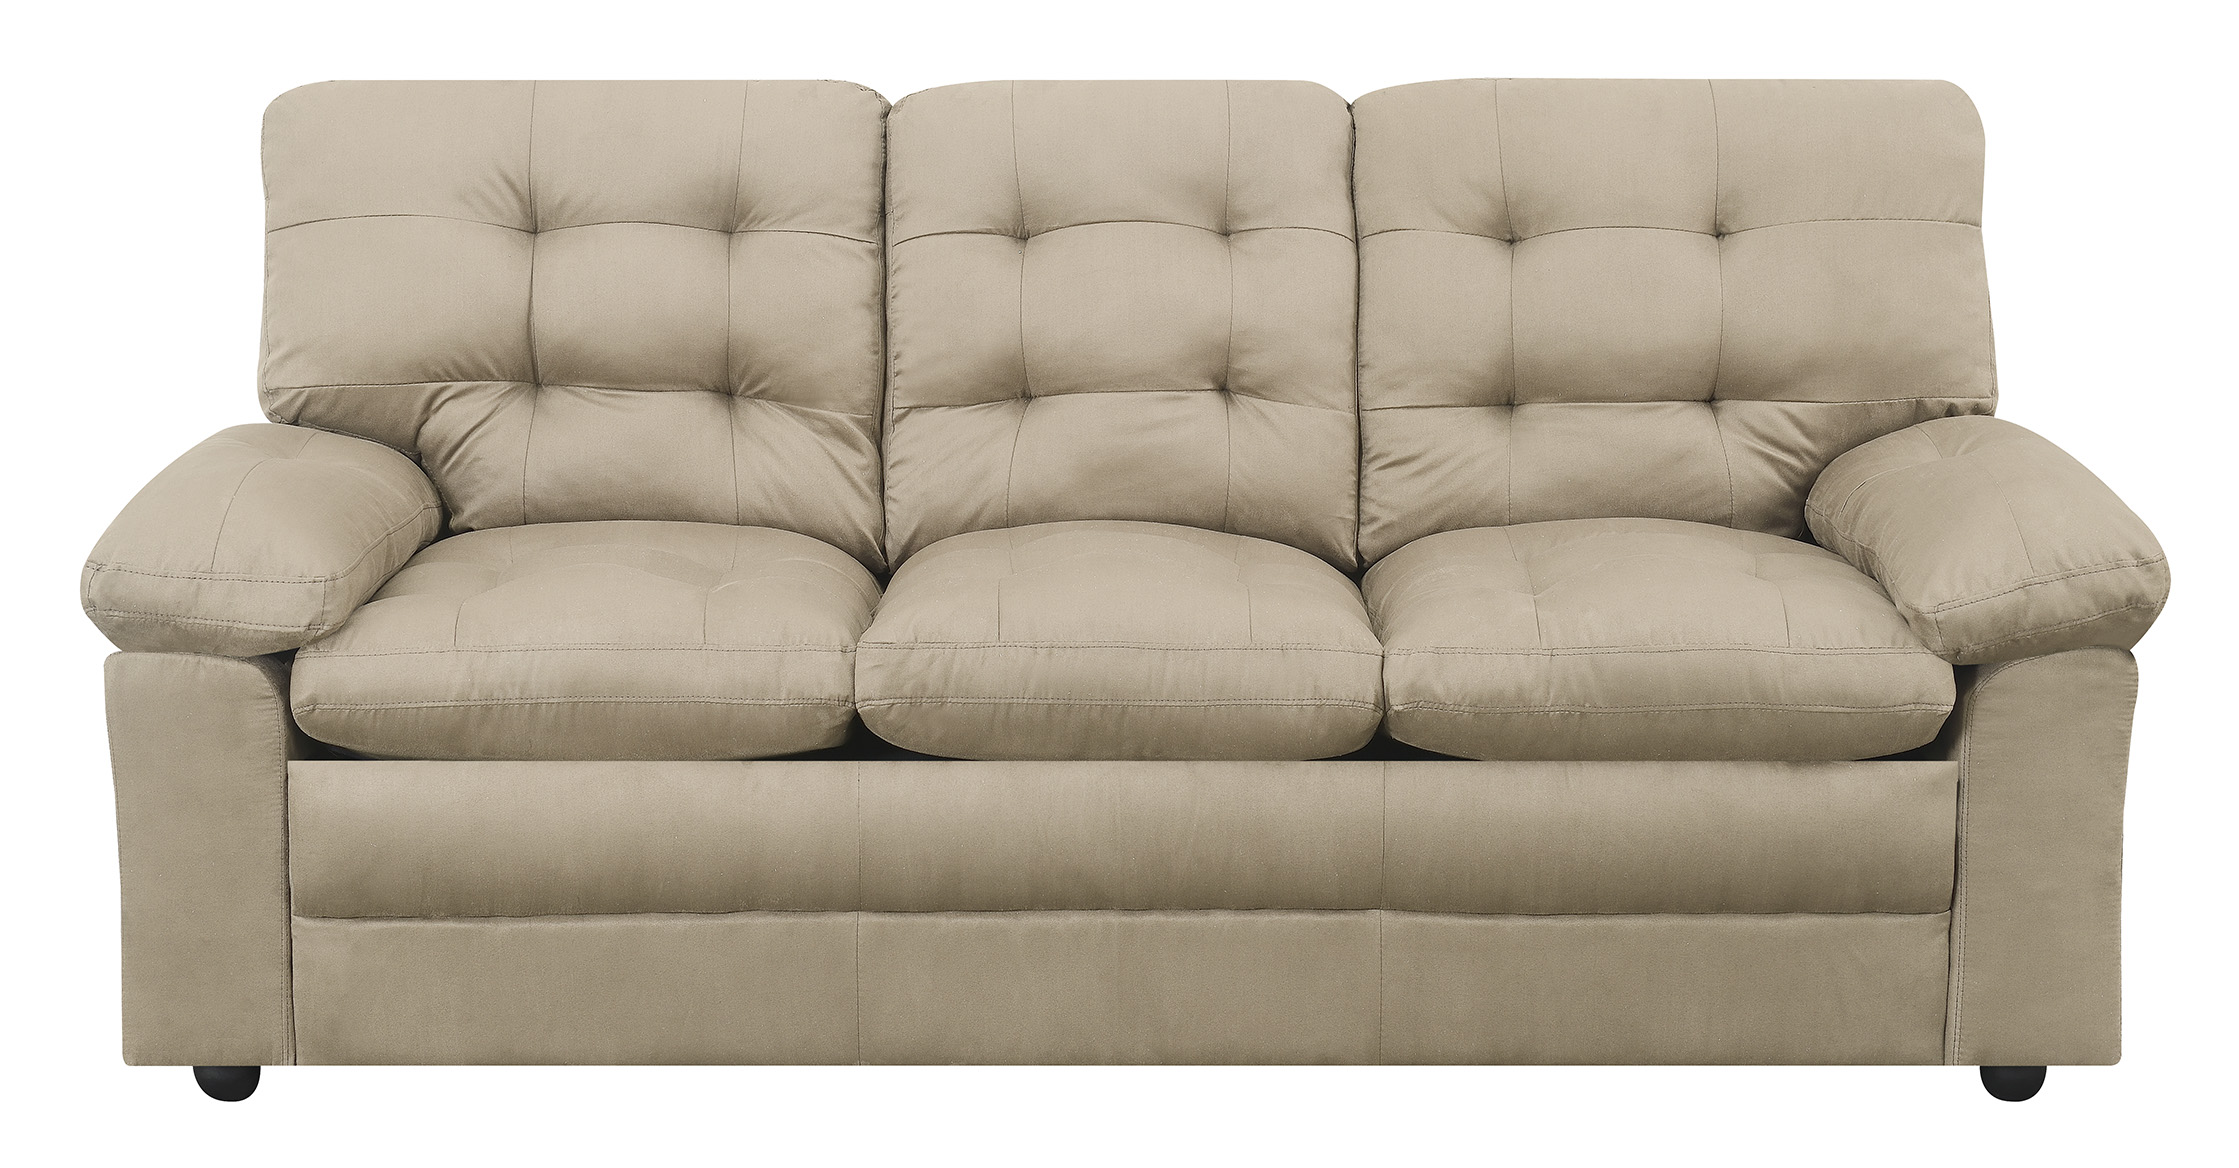 sofa foam padding sure fit stretch metro 2 piece slipcover mainstays buchannan soft couch taupe microfiber arm